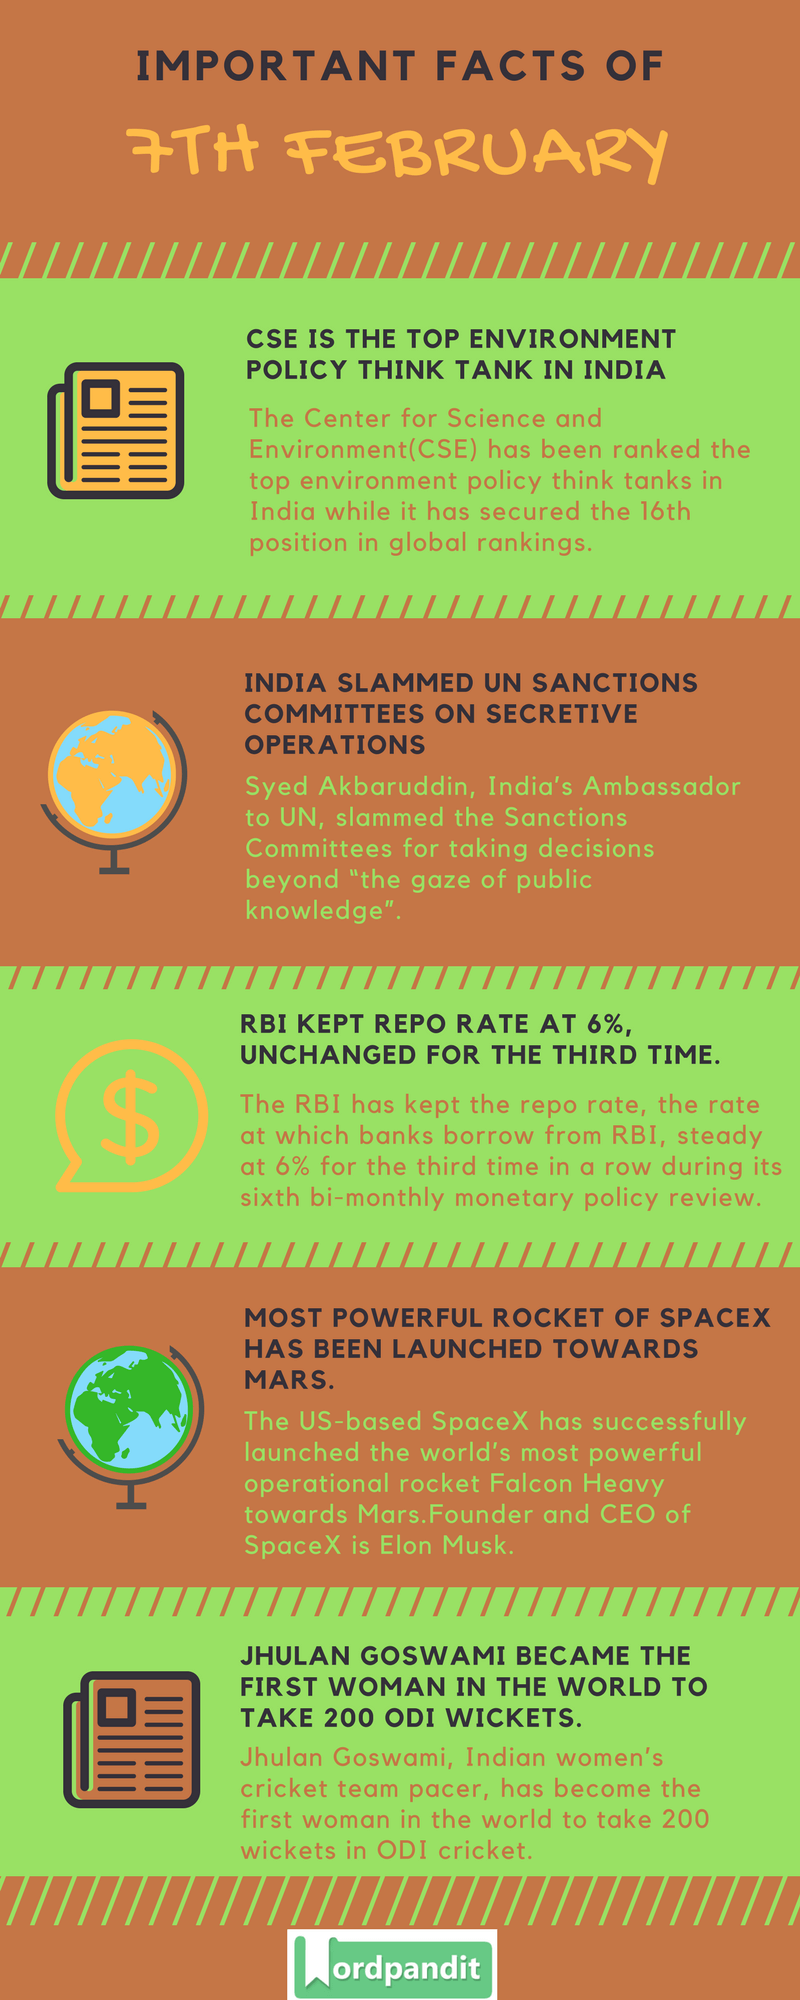 Daily Current Affairs 7 February 2018 Current Affairs Quiz February 7 2018 Current Affairs Infographic